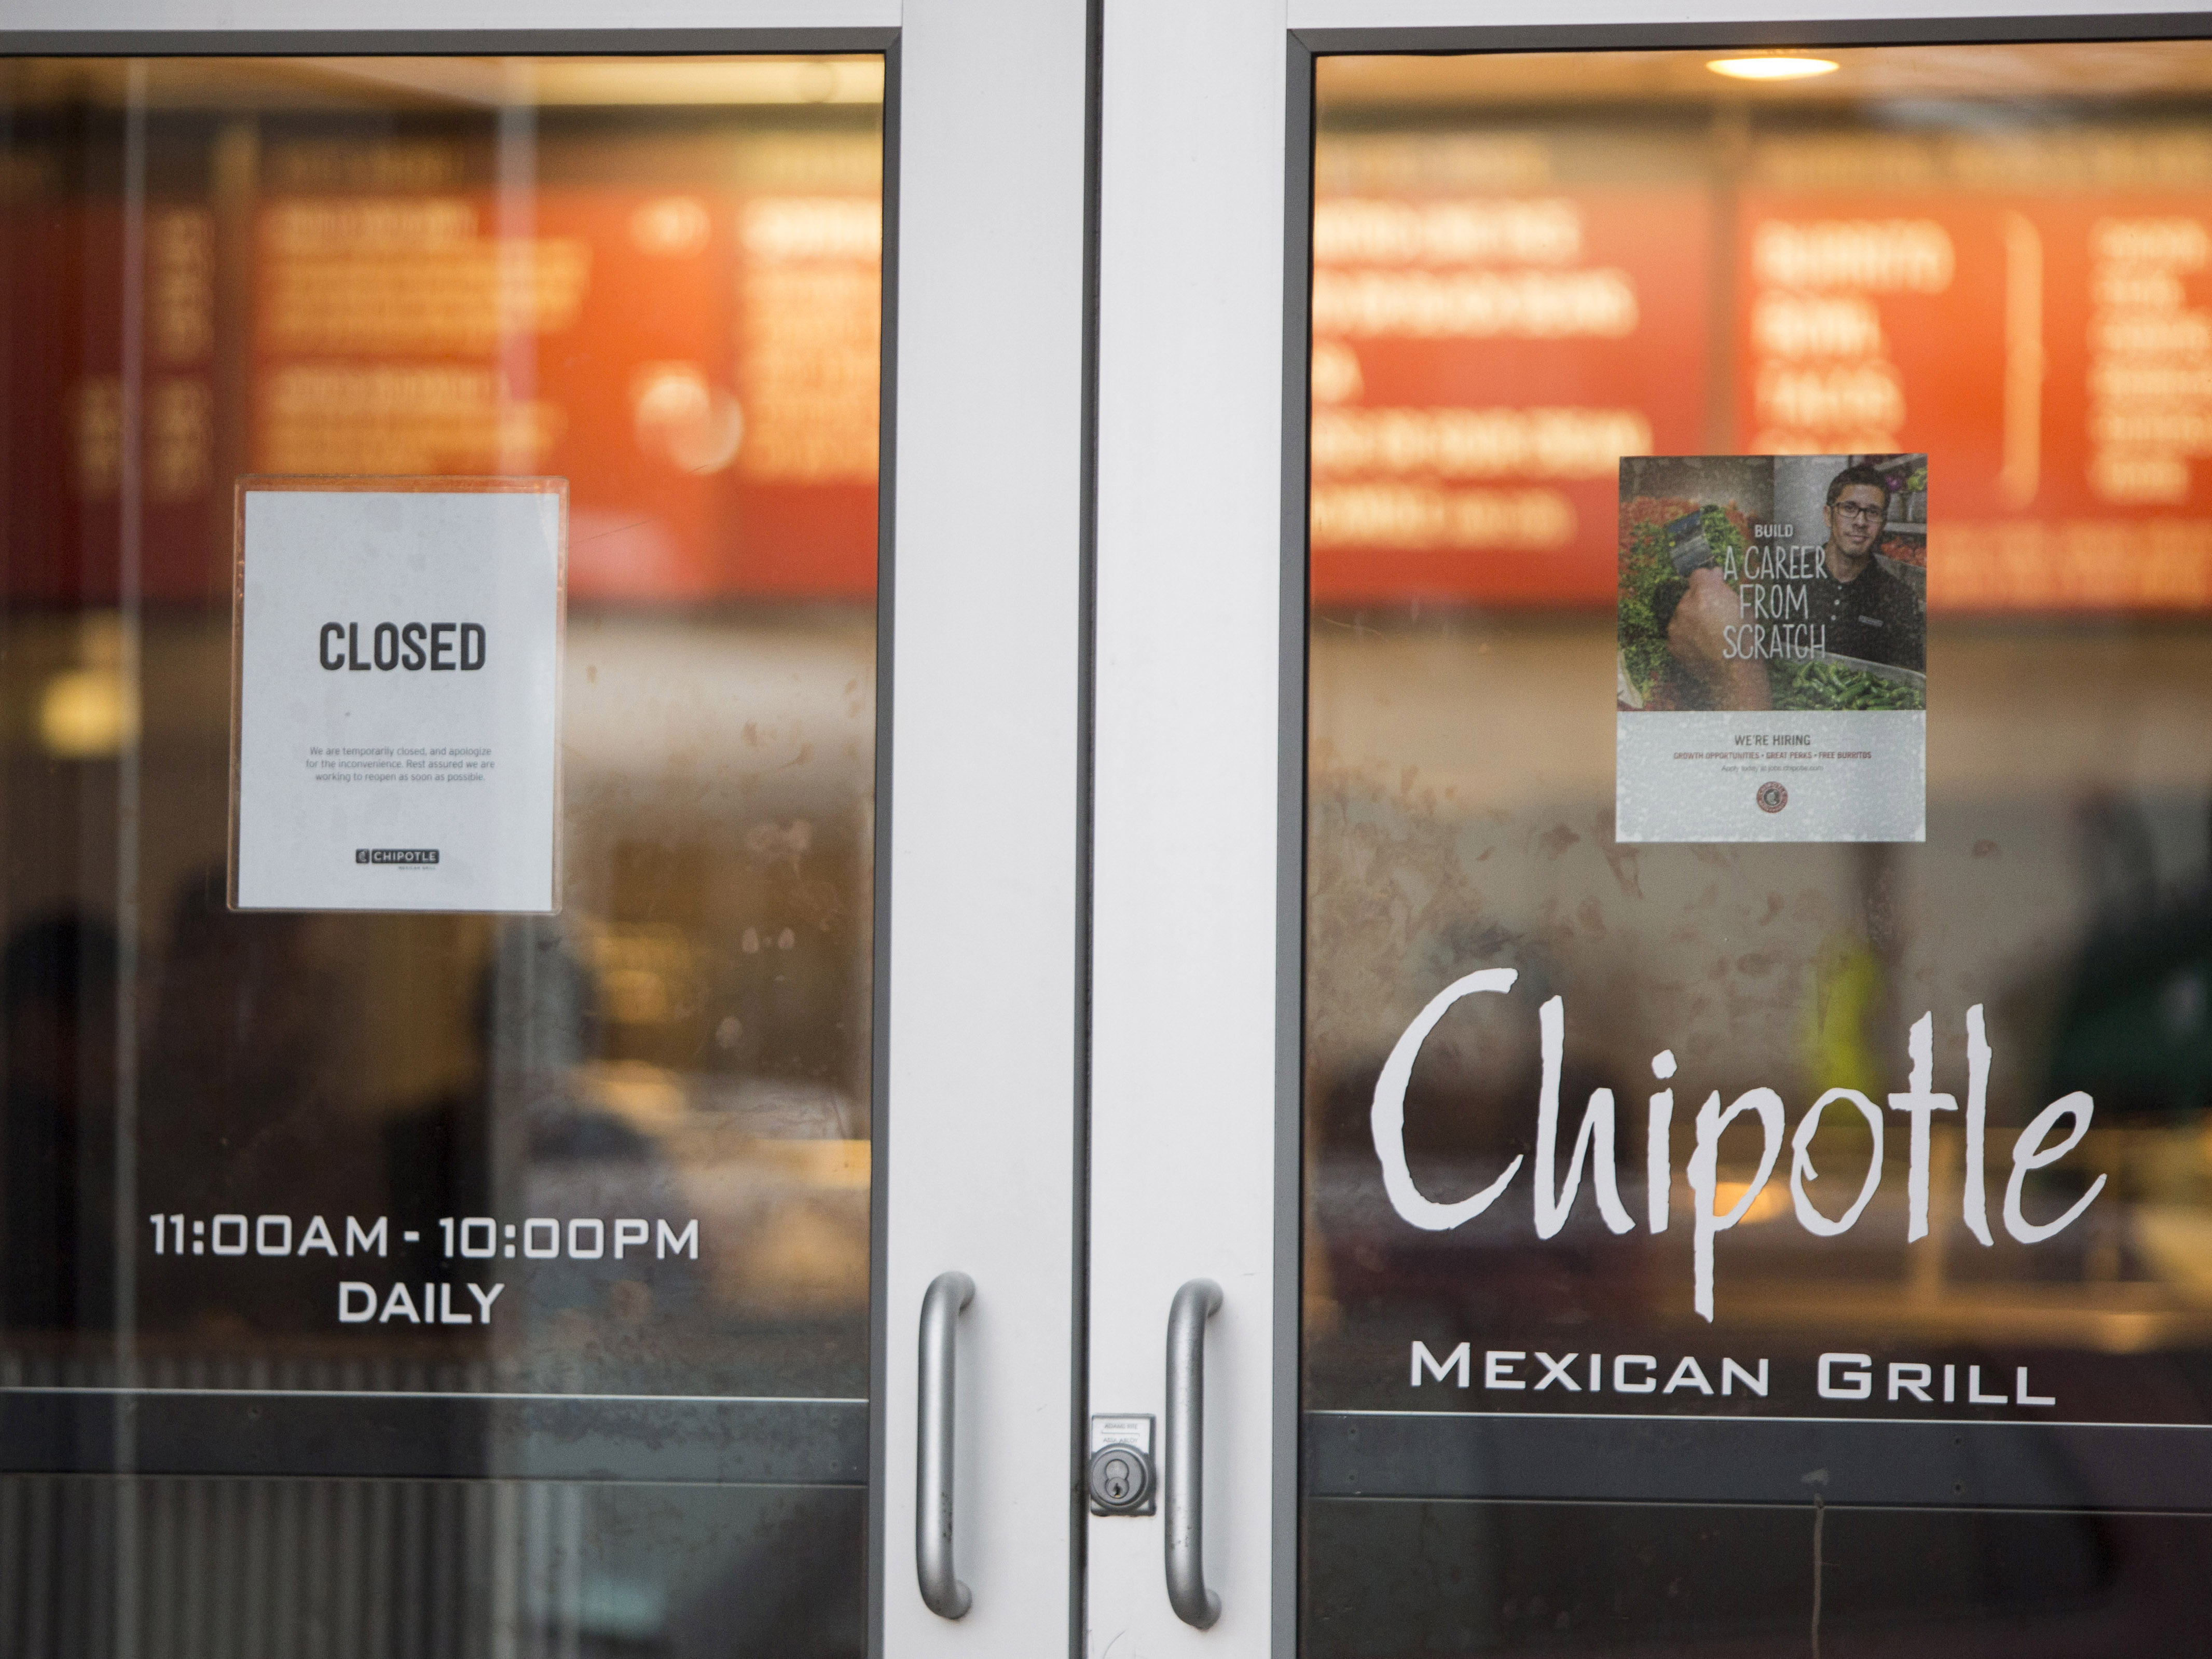 80 Boston College Students Fall Ill After Eating At Chipotle Restaurant